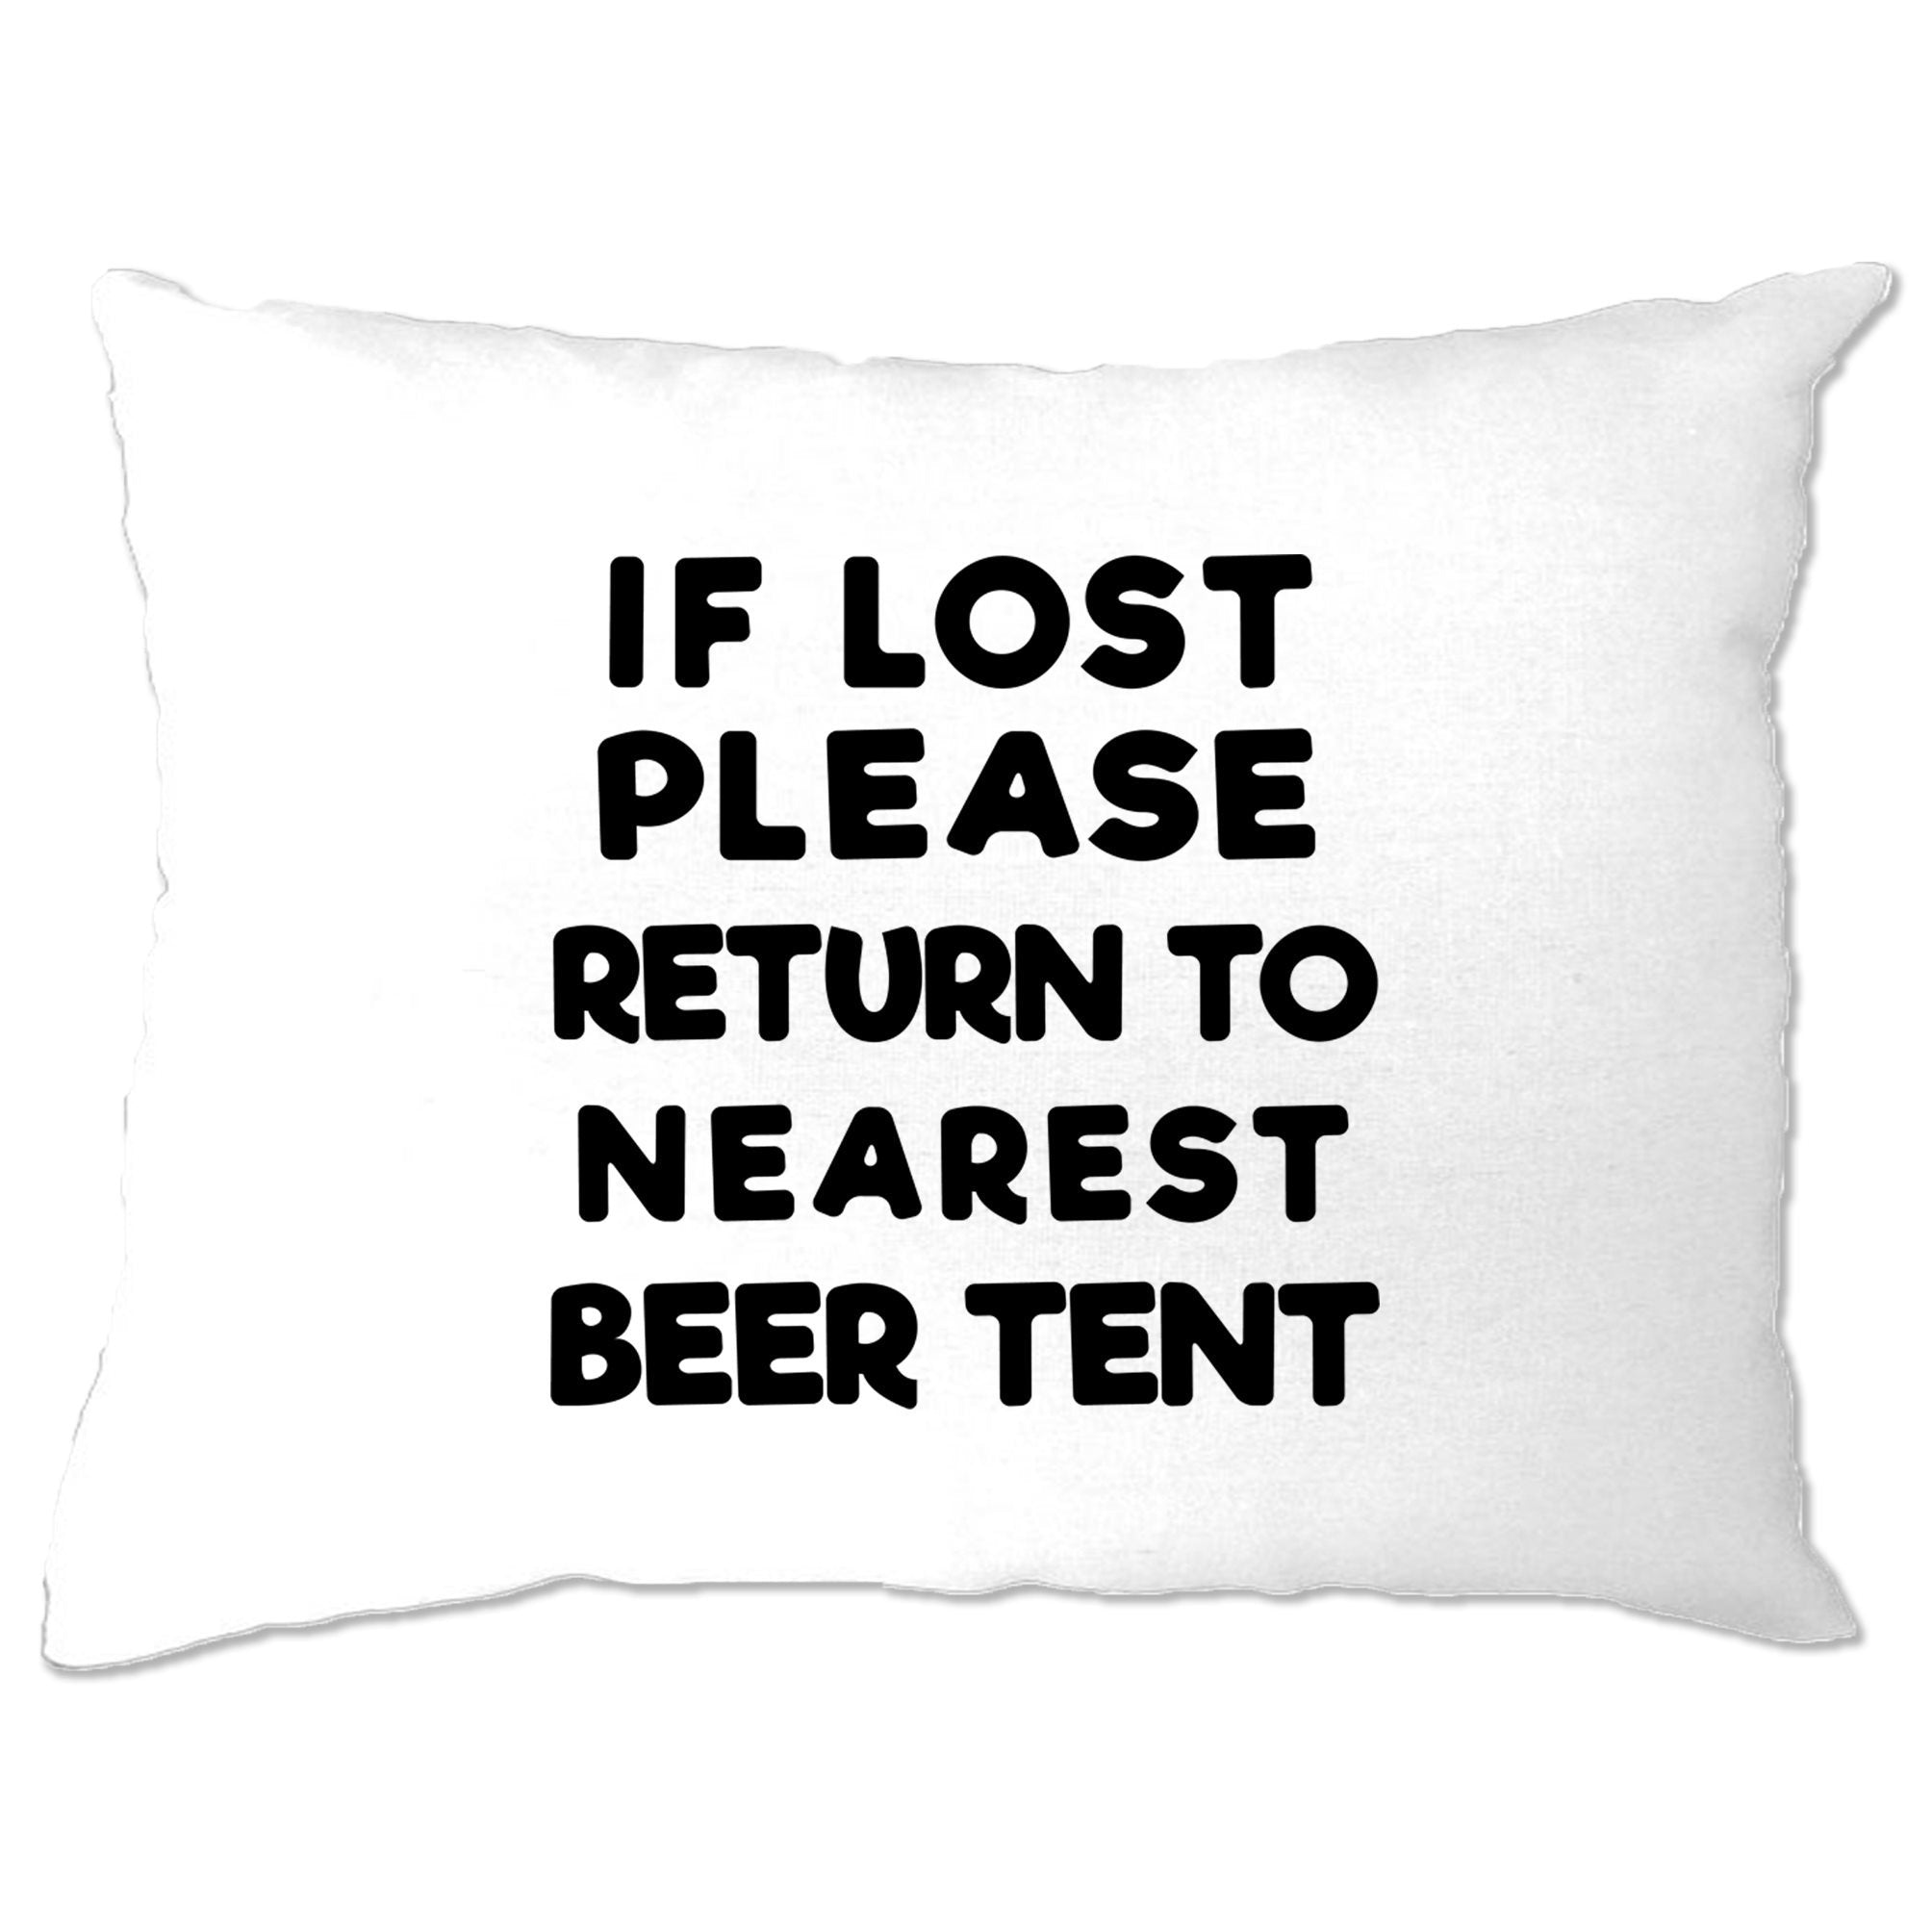 Novelty Festival Pillow Case If Lost, Return To Beer Tent